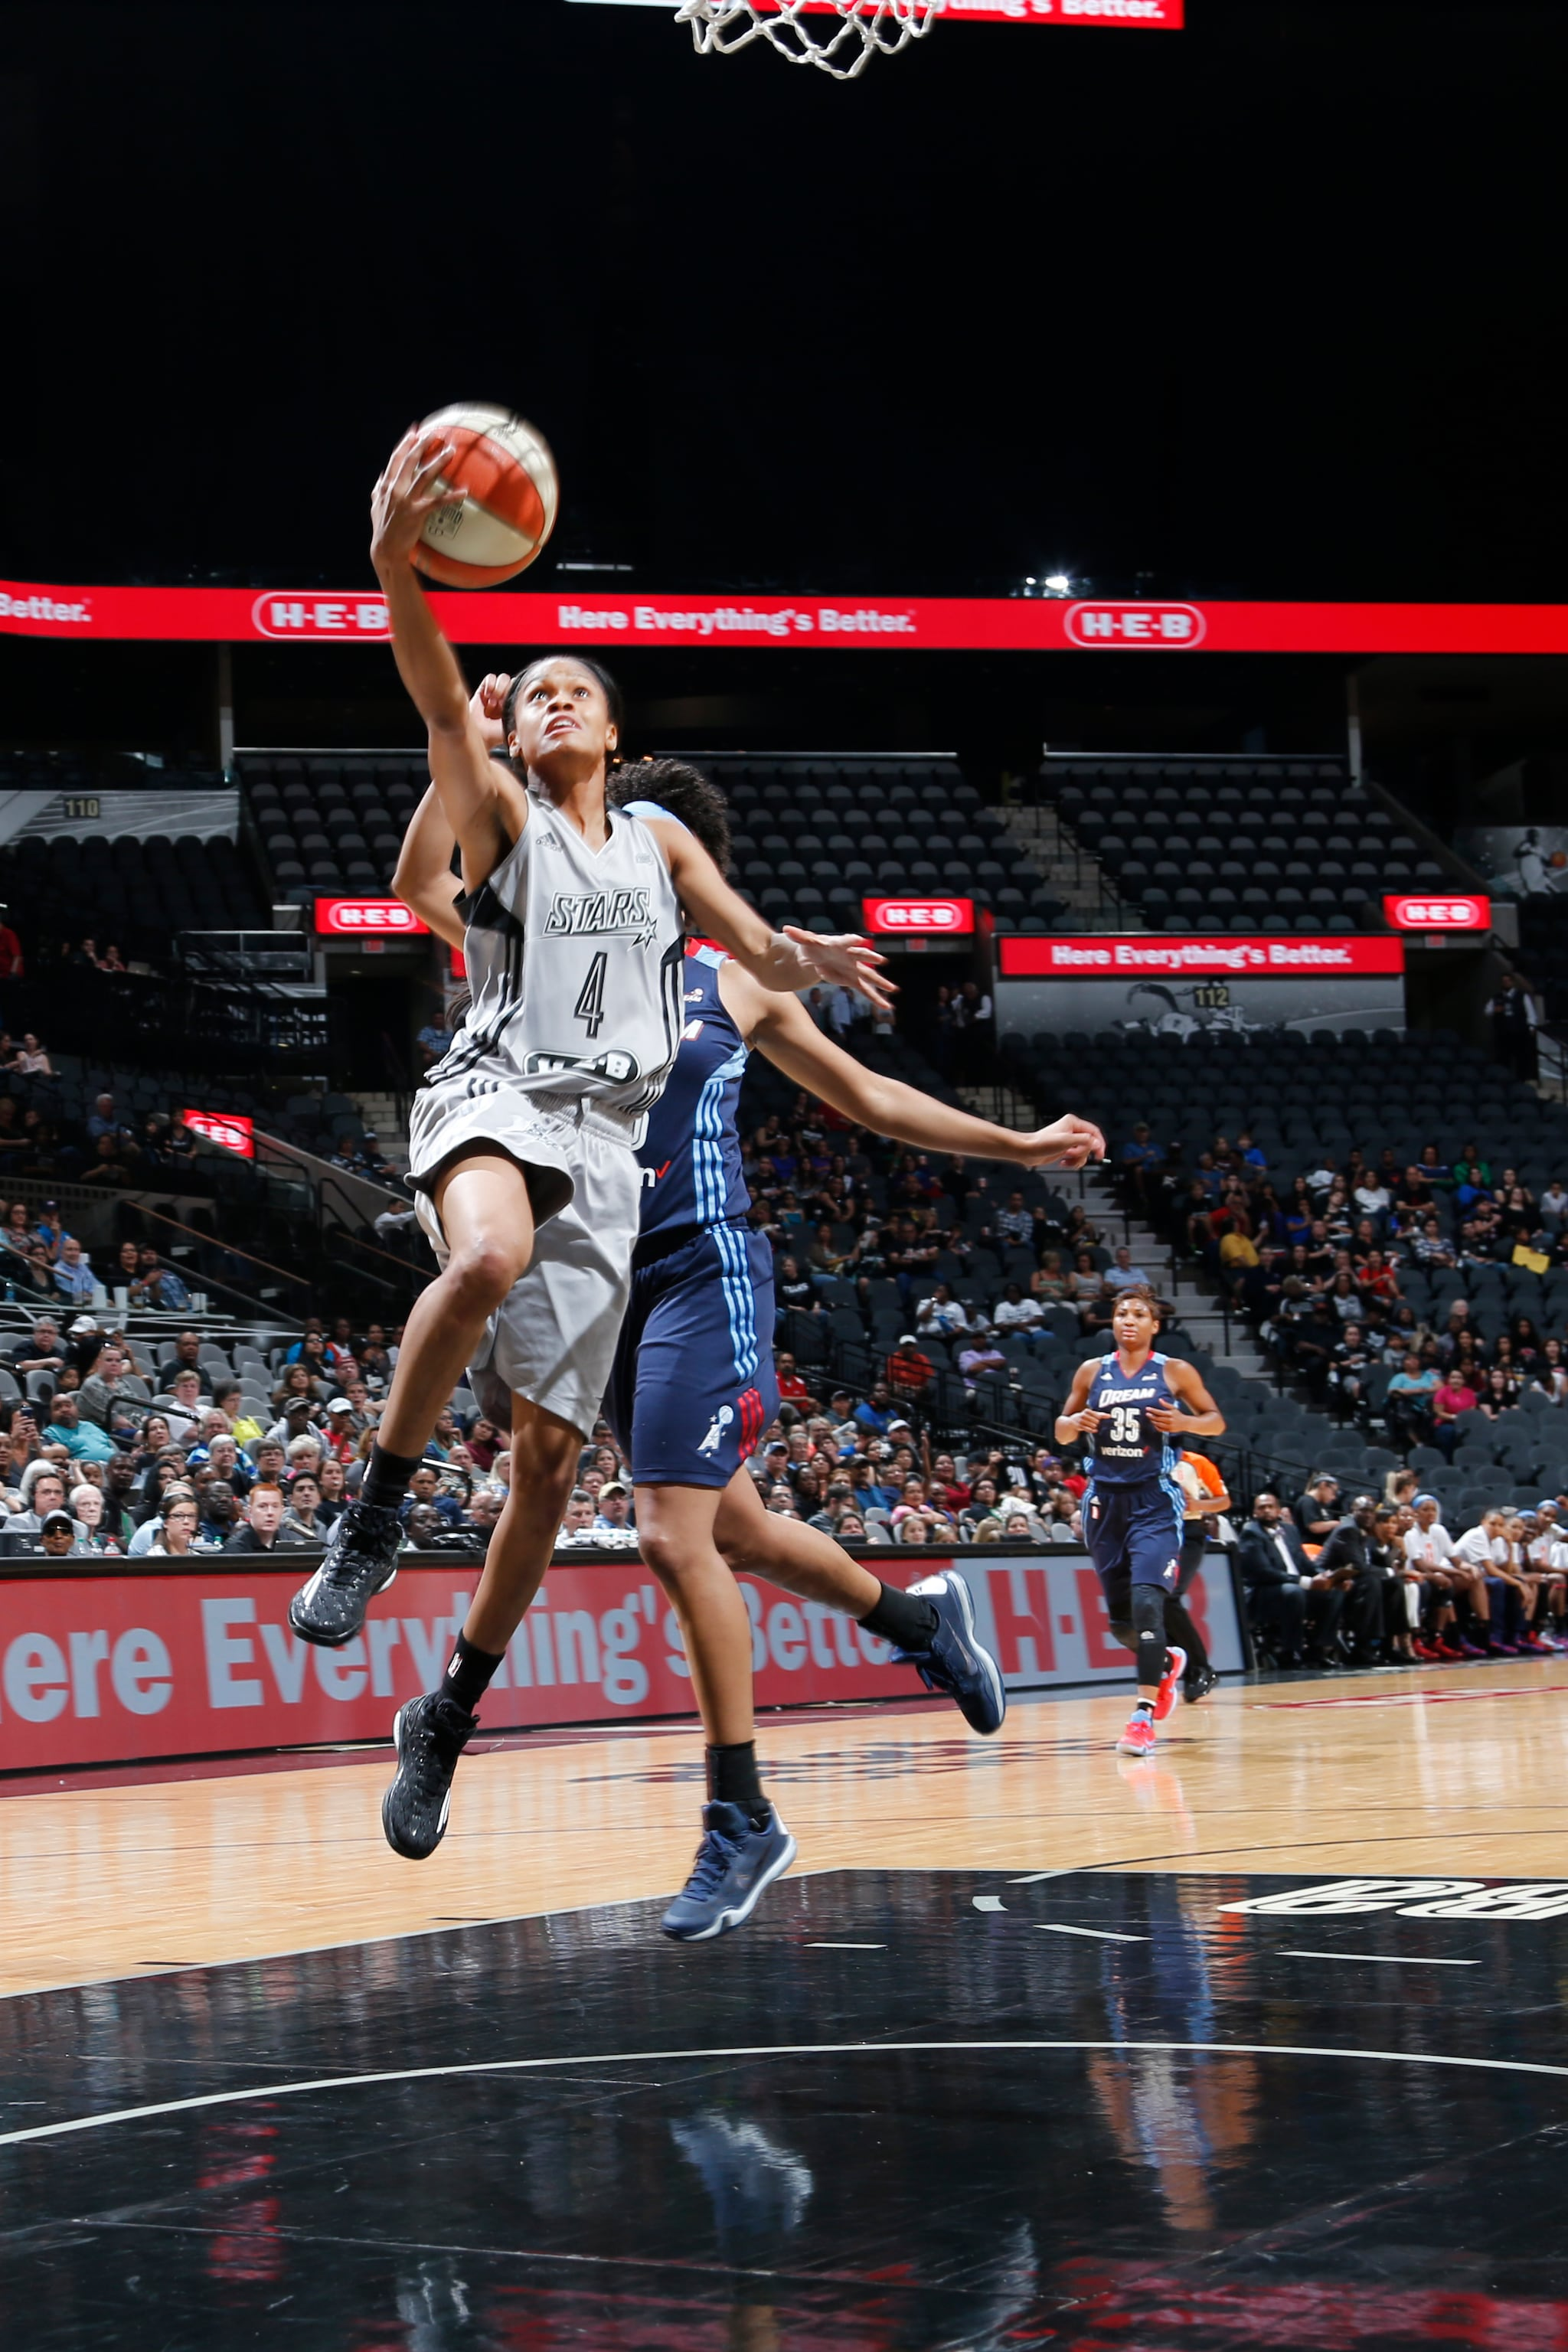 SAN ANTONIO, TX - MAY 14: Moriah Jefferson #4 of the San Antonio Stars goes for the lay up against the Atlanta Dream during the game on May 14, 2016 at AT&T Center in San Antonio, Texas. NOTE TO USER: User expressly acknowledges and agrees that, by downloading and or using this Photograph, user is consenting to the terms and conditions of the Getty Images License Agreement. Mandatory Copyright Notice: Copyright 2016 NBAE (Photo by Chris Covatta/NBAE via Getty Images)